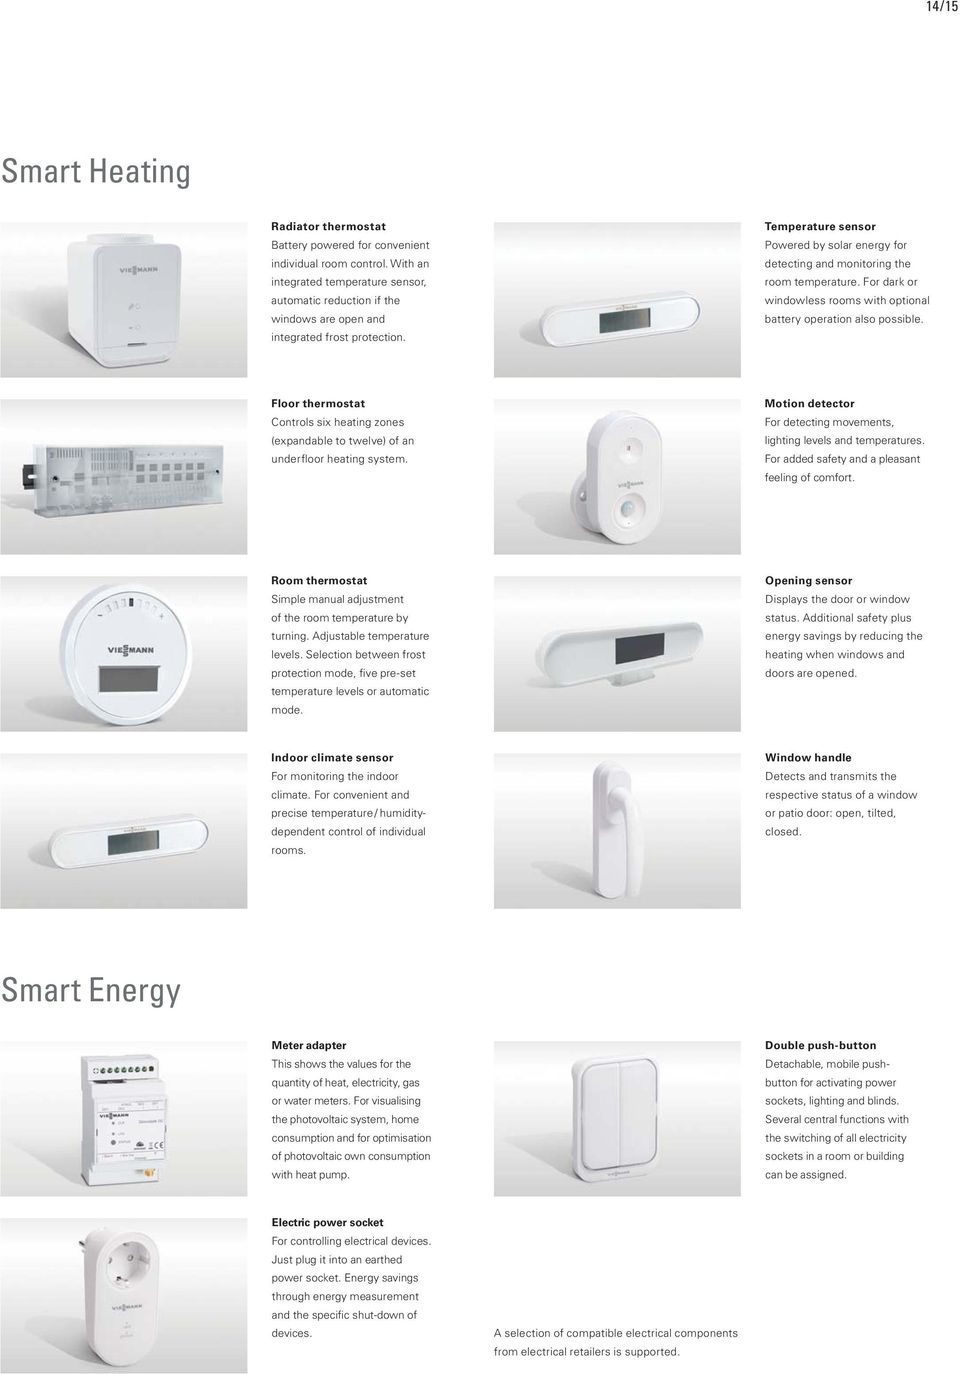 Temperature sensor Powered by solar energy for detecting and monitoring the room temperature. For dark or windowless rooms with optional battery operation also possible.